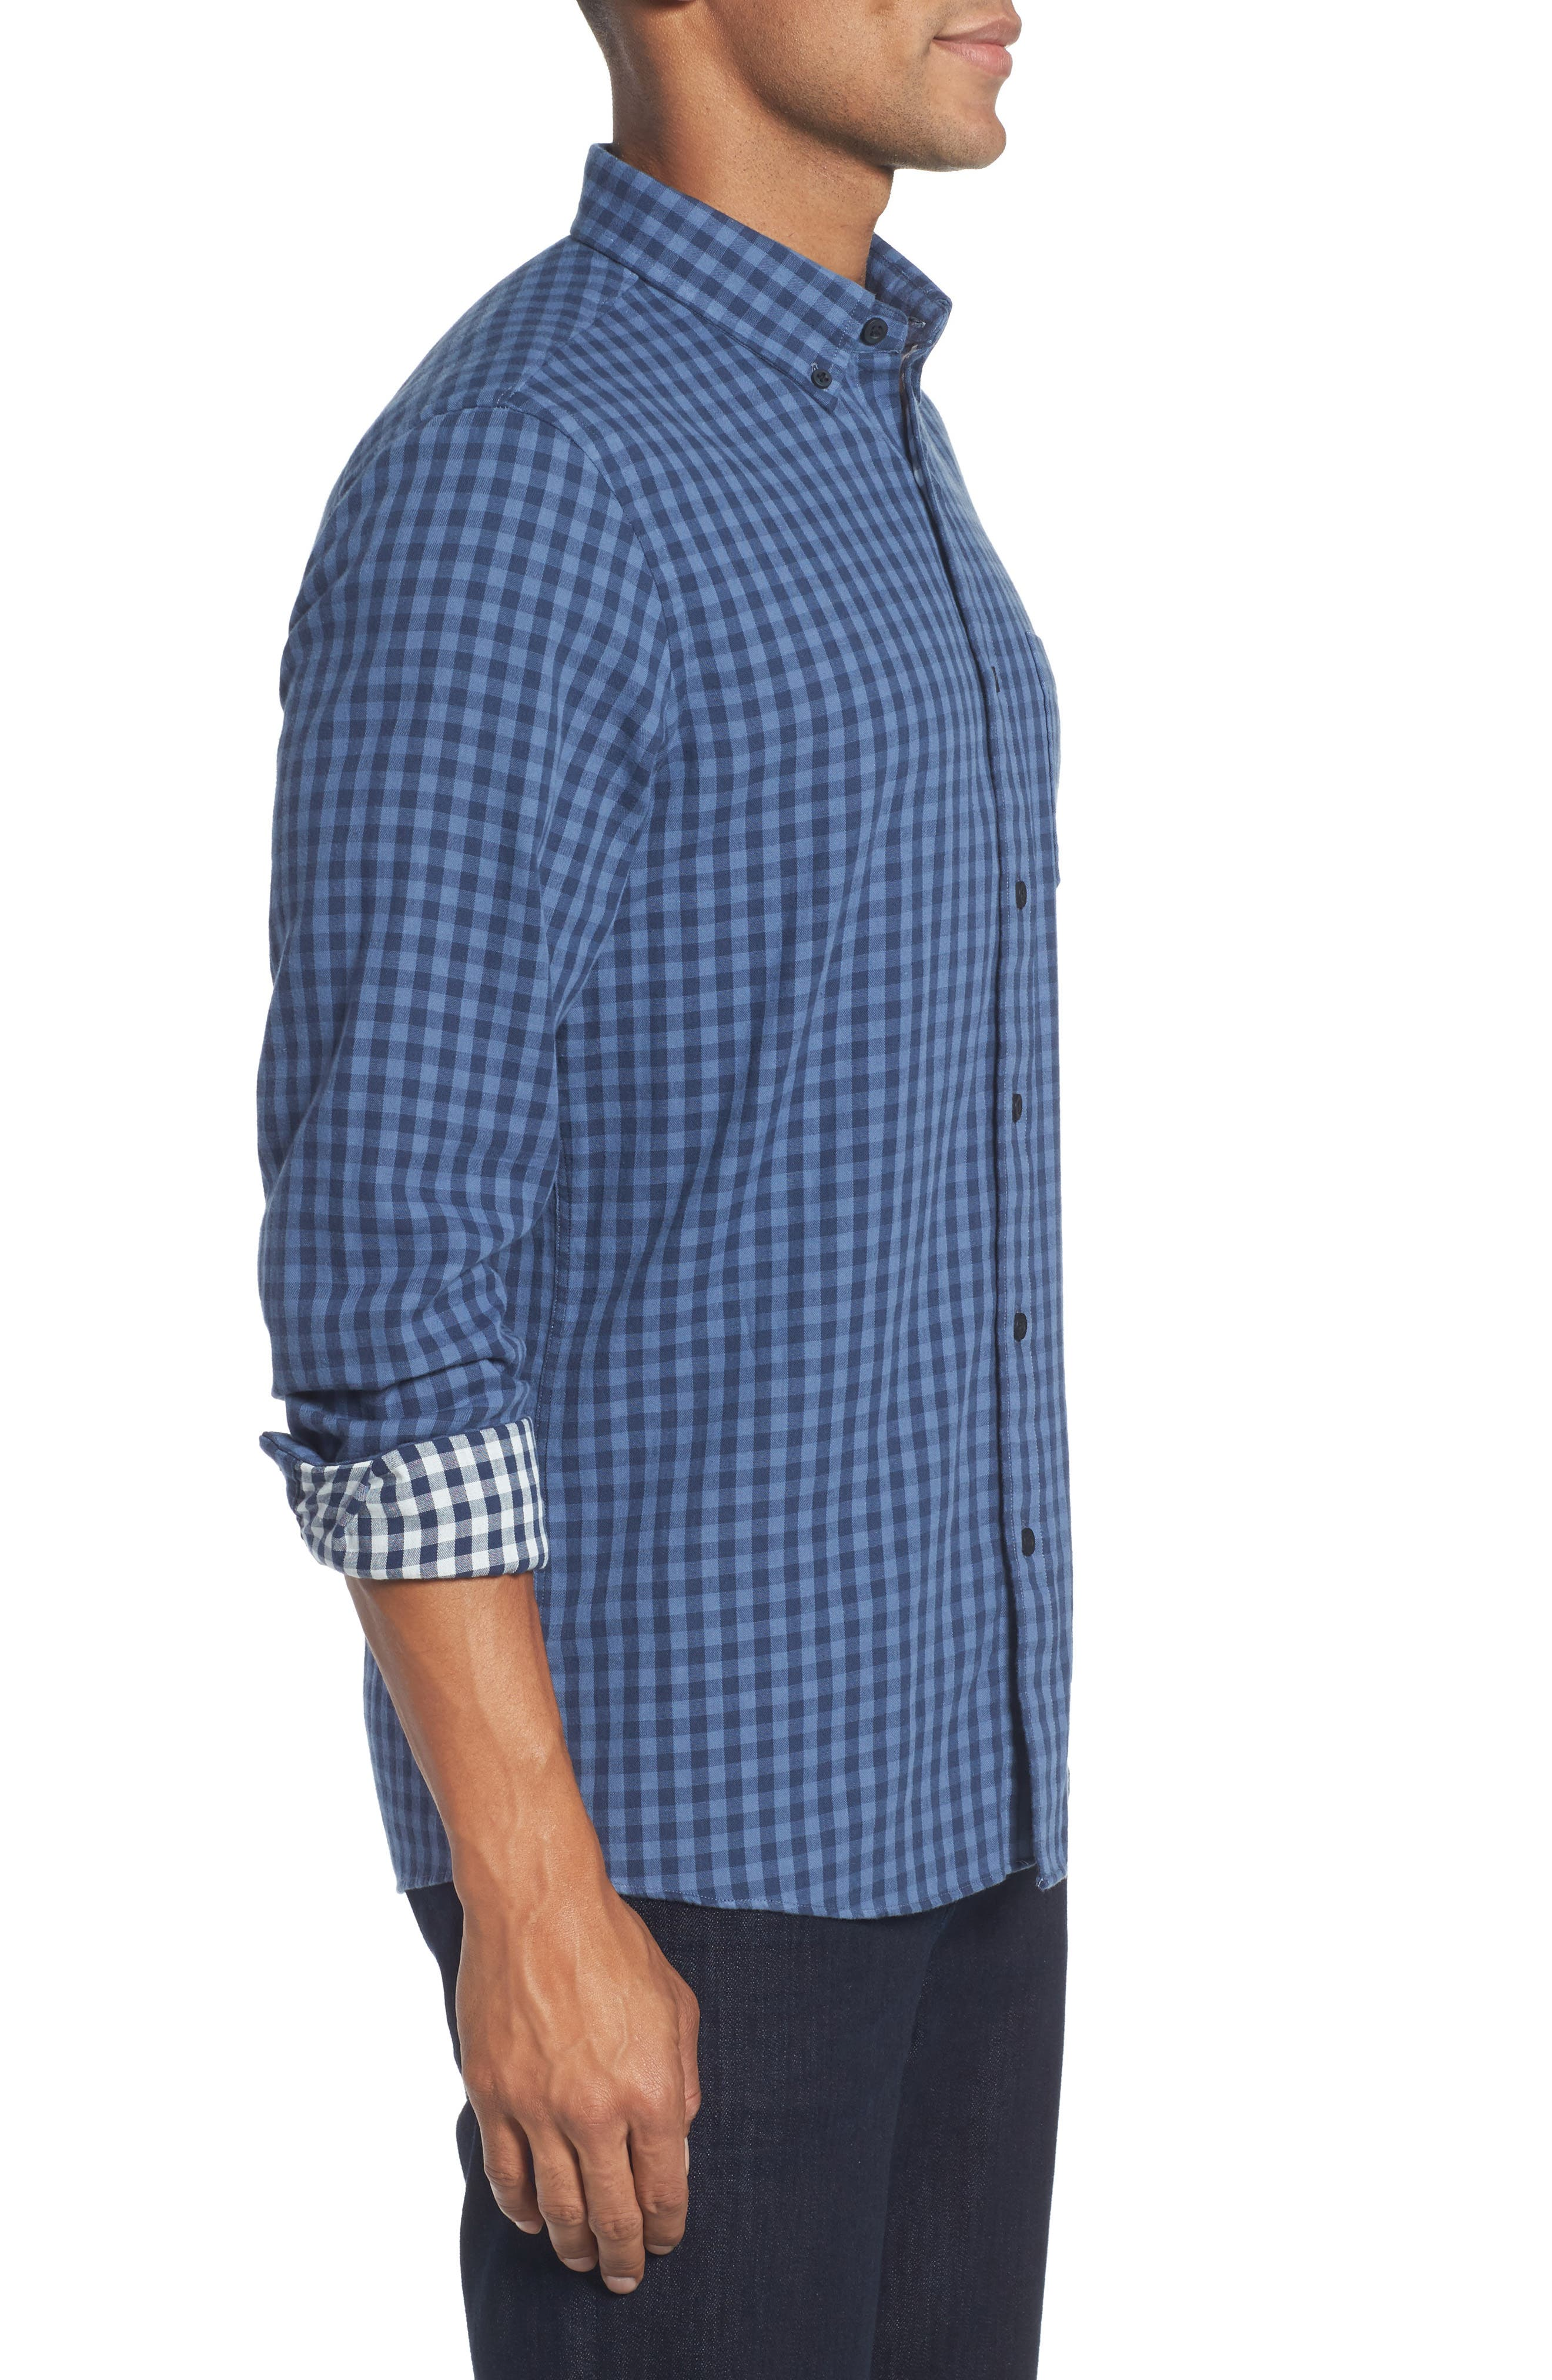 Trim Fit Duofold Check Sport Shirt,                             Alternate thumbnail 3, color,                             Blue Canal Navy Plaid Duofold